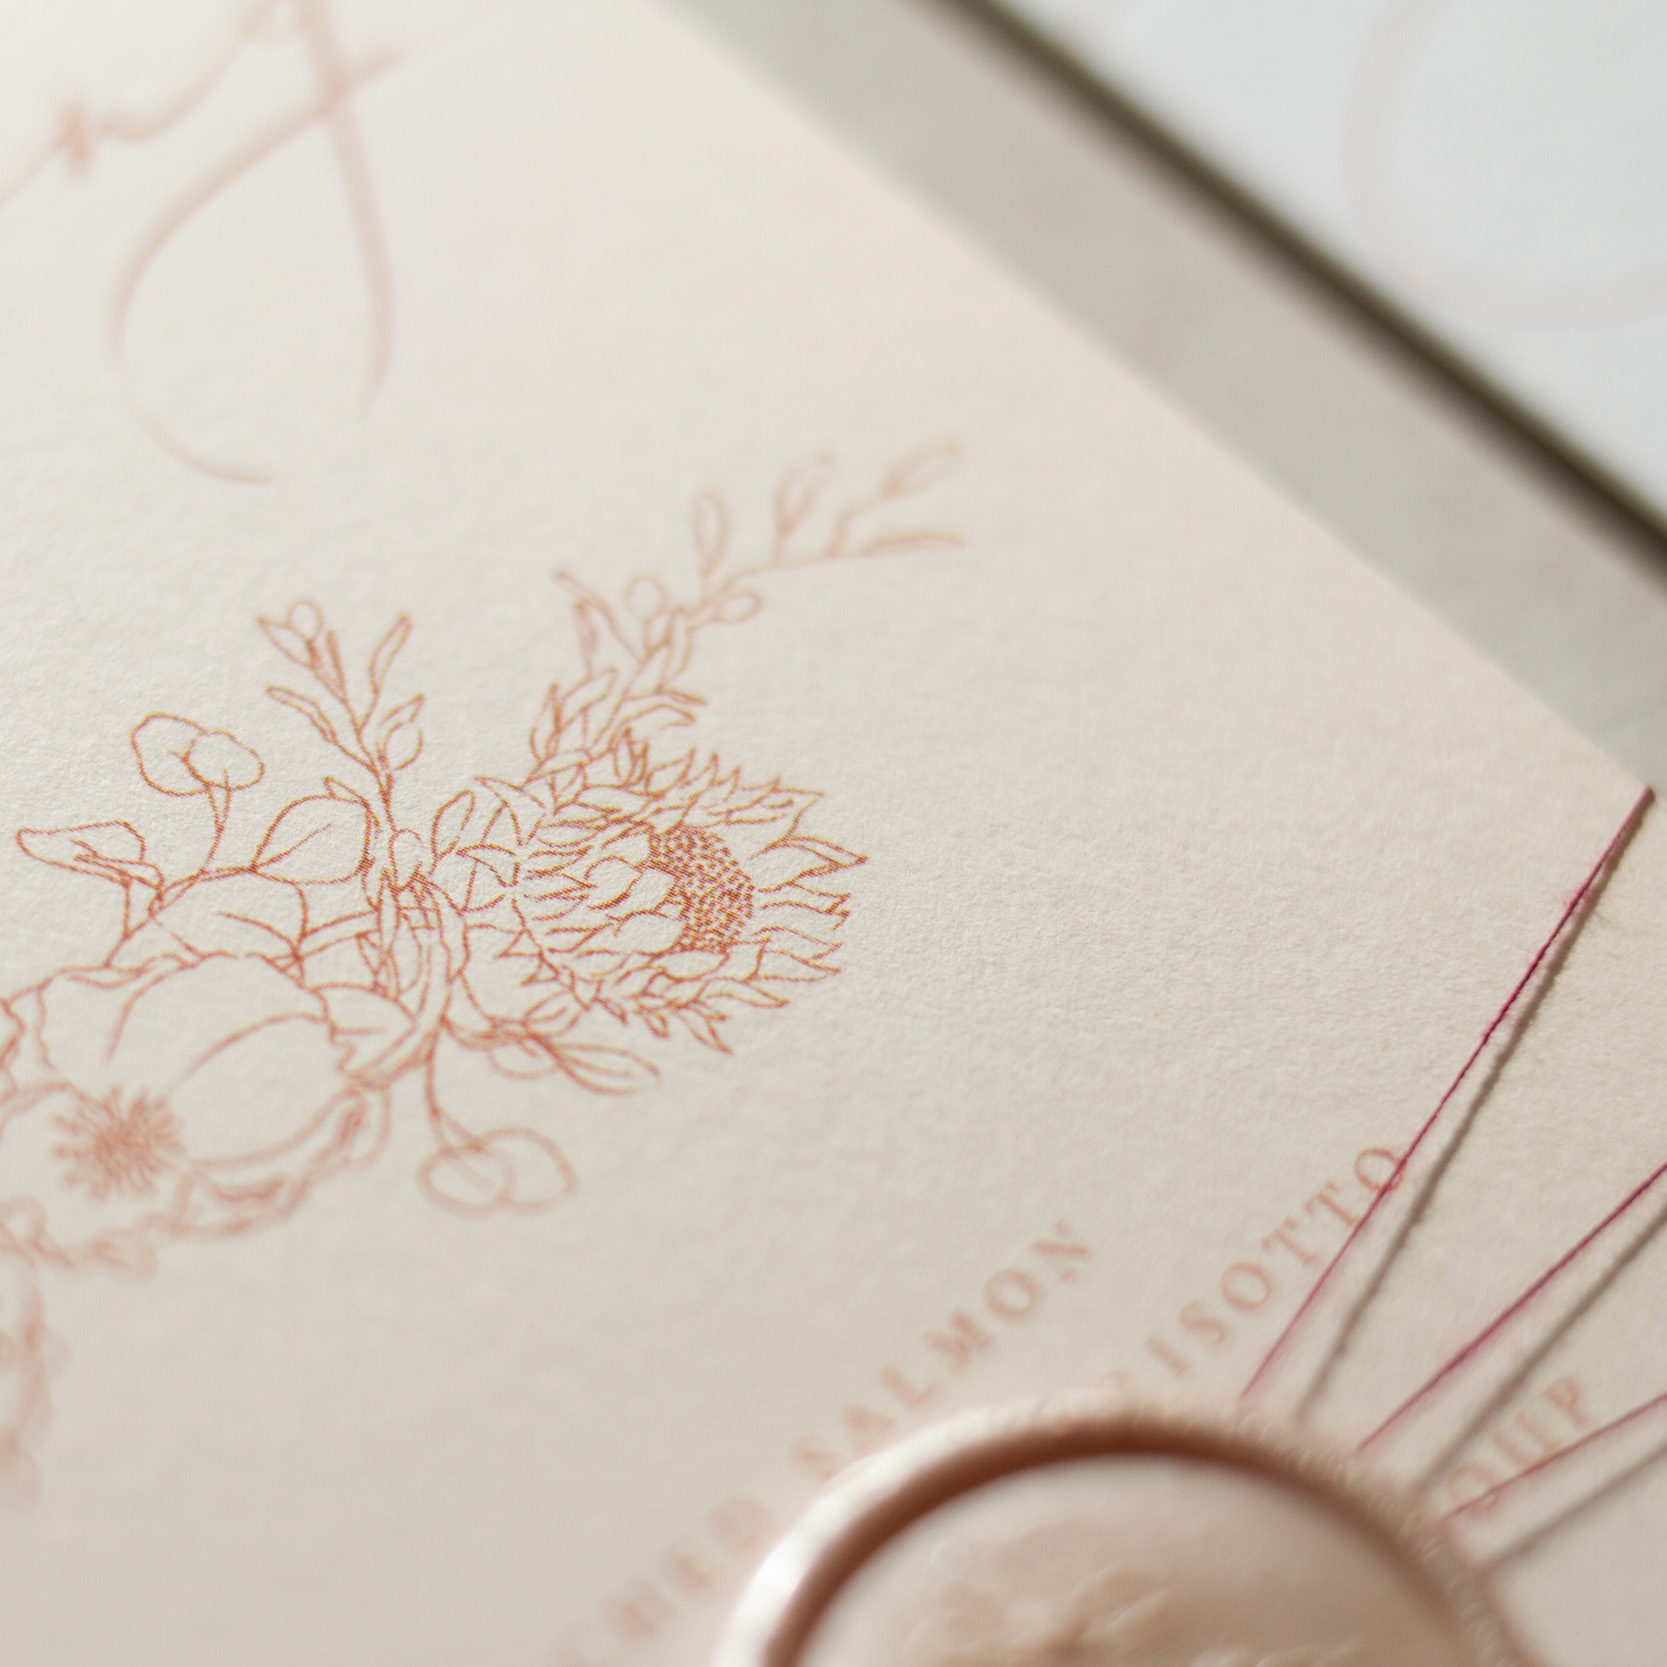 Blush Petals Illustrated Floral Wedding Menu Design with Blush Pink Wax Seal - www.pinglepie.com.jpg